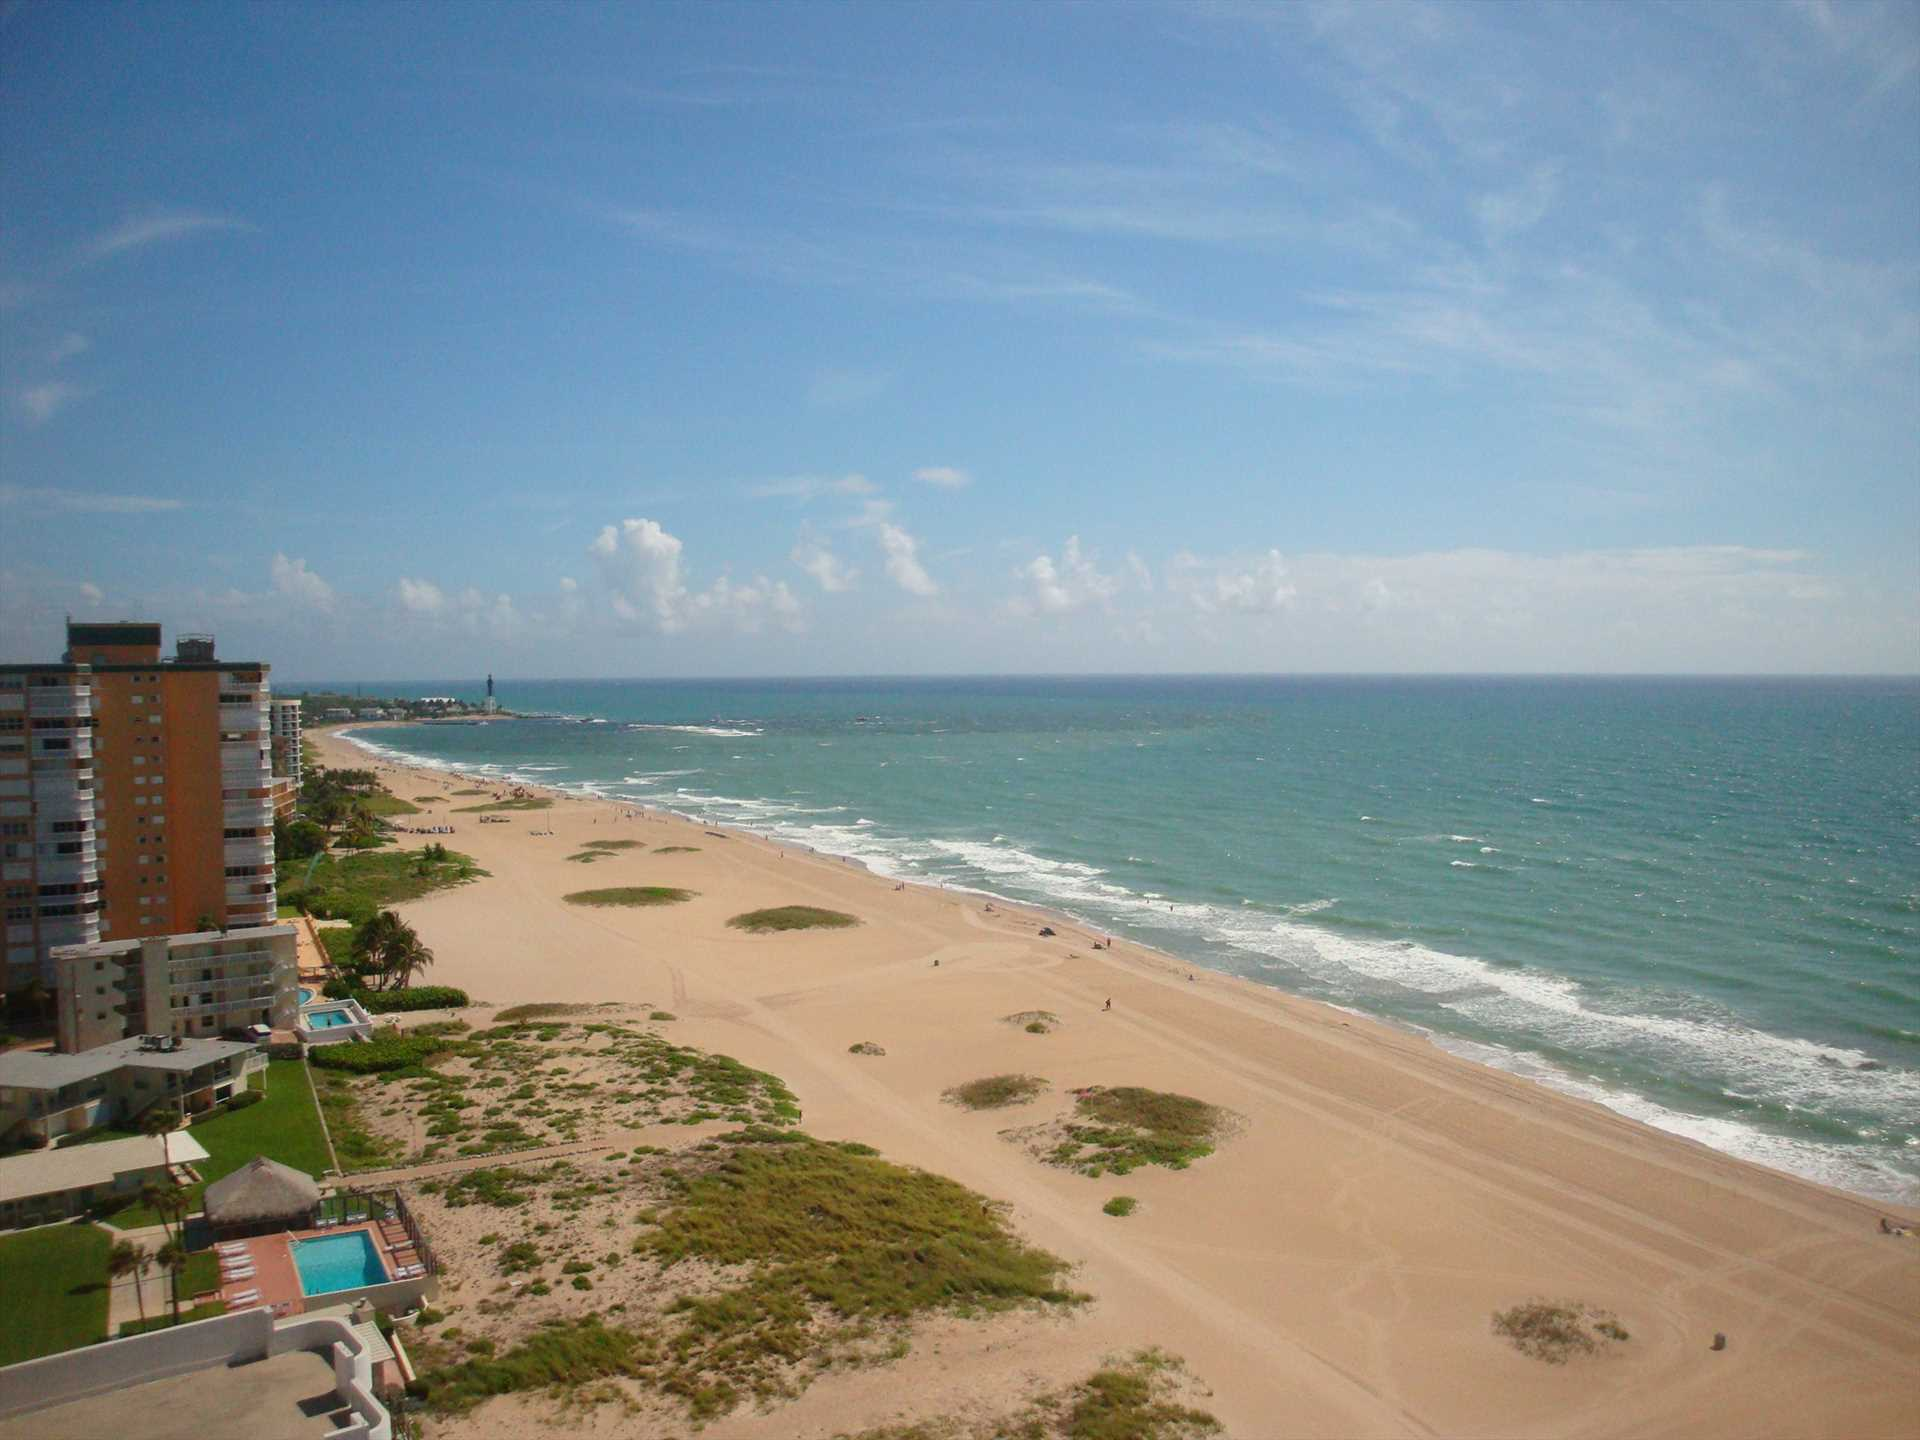 The warm Atlantic breezes, sand and surf await your arrival.